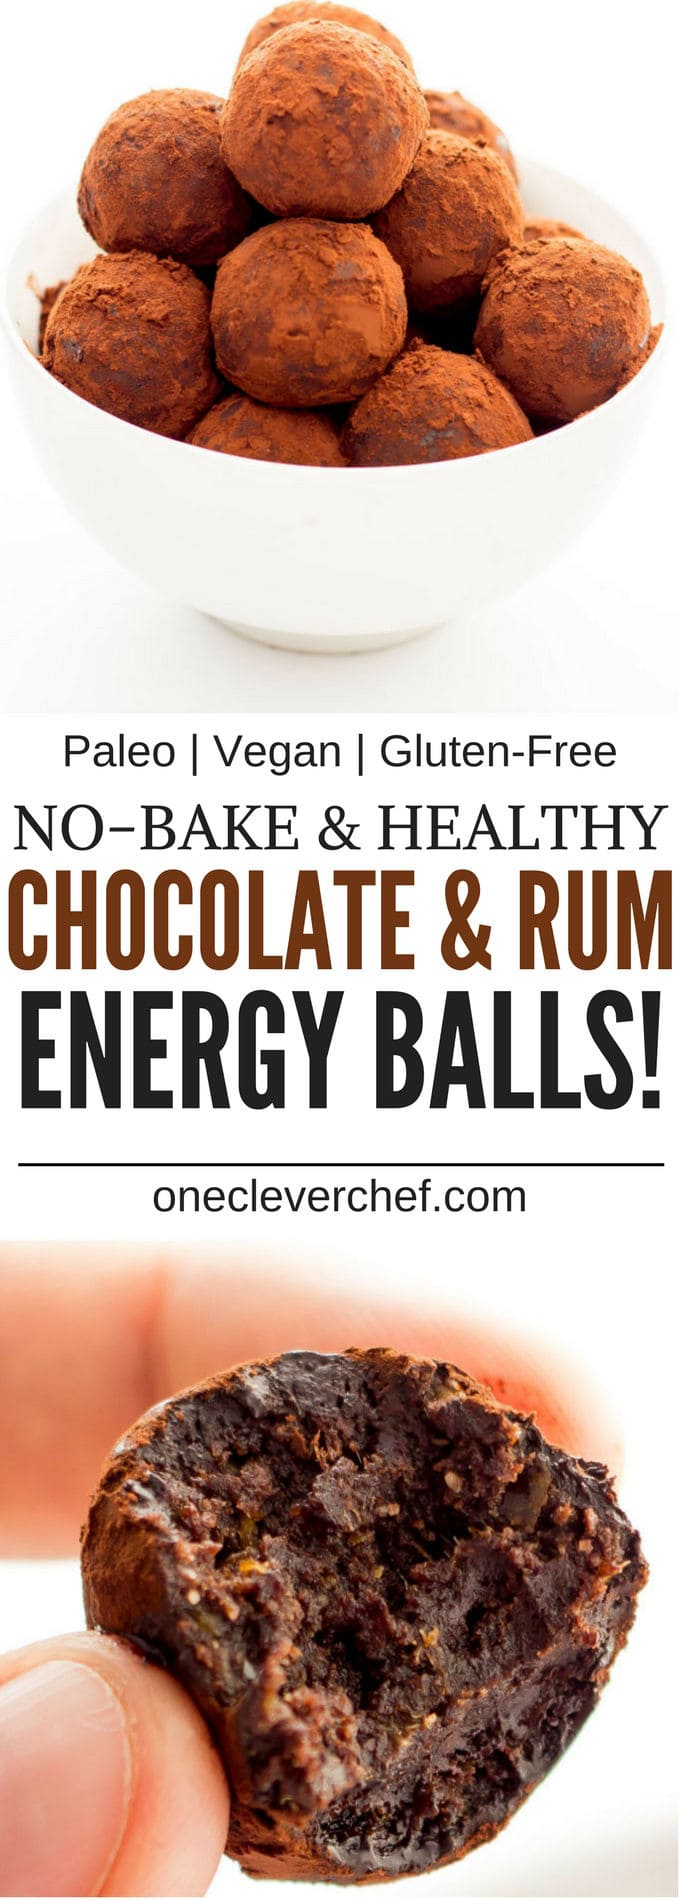 These Healthy Chocolate & Rum Balls are the perfect no-bake snack. They are easy to make, protein-packed and perfect either as a dessert or a post-workout lunch. Made in one bowl and ready under 15 minutes, theya re also paleo, vegan, gluten-free and dairy-free | www.onecleverchef.com